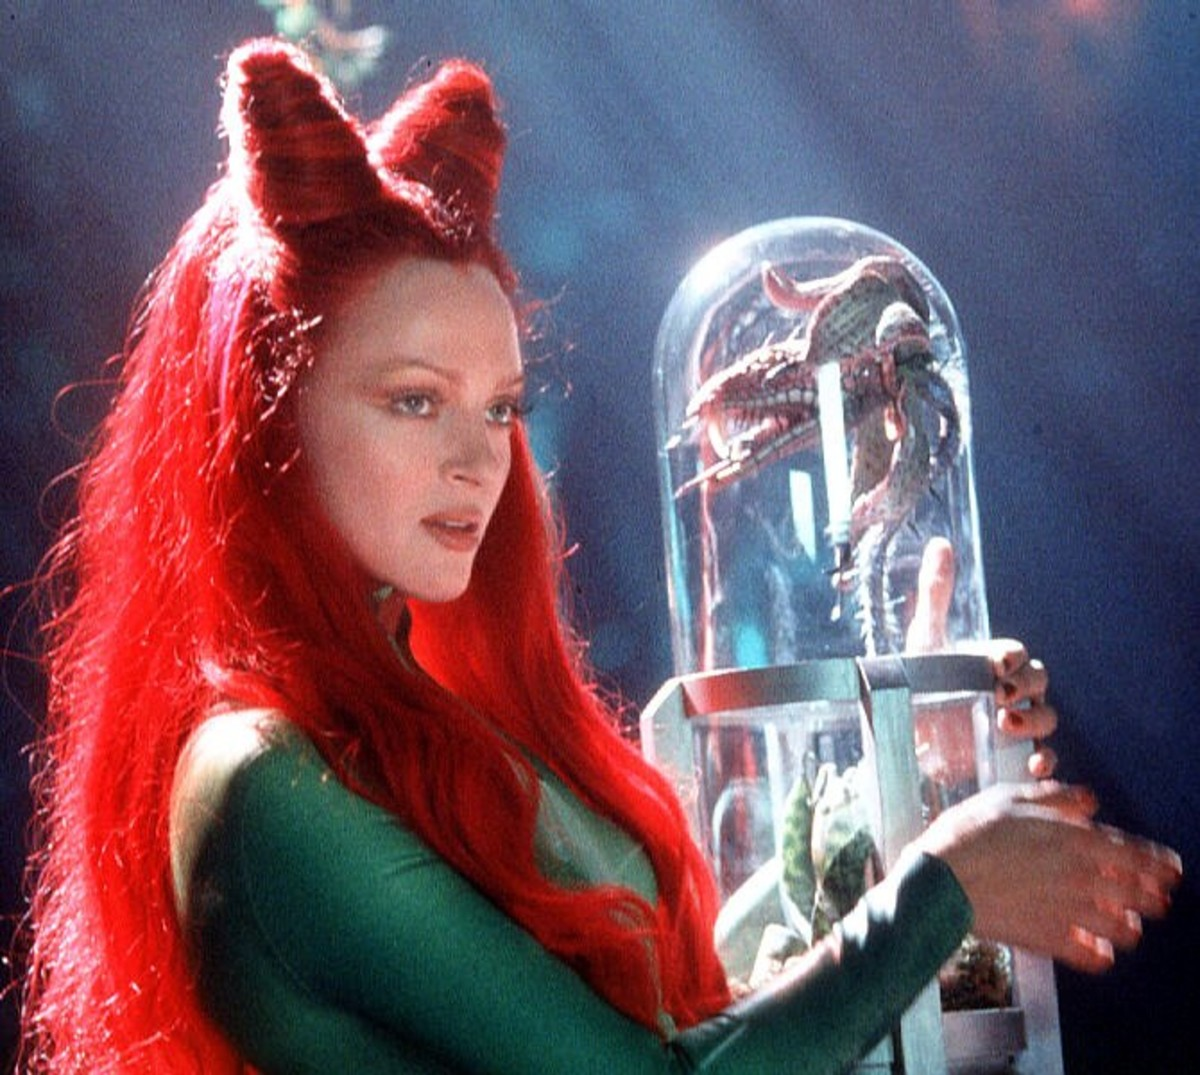 Uma Thurman as Poison Ivy in Batman & Robin (1997)